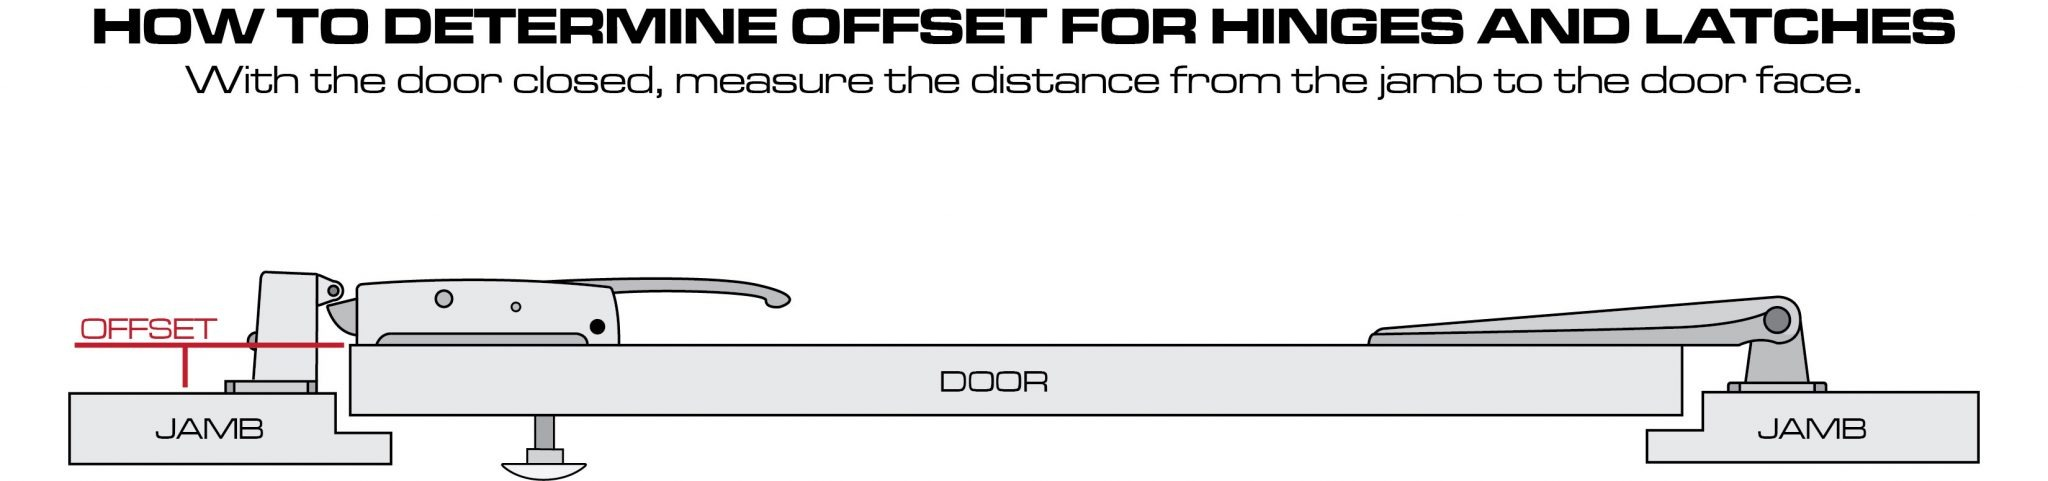 How to determine offset